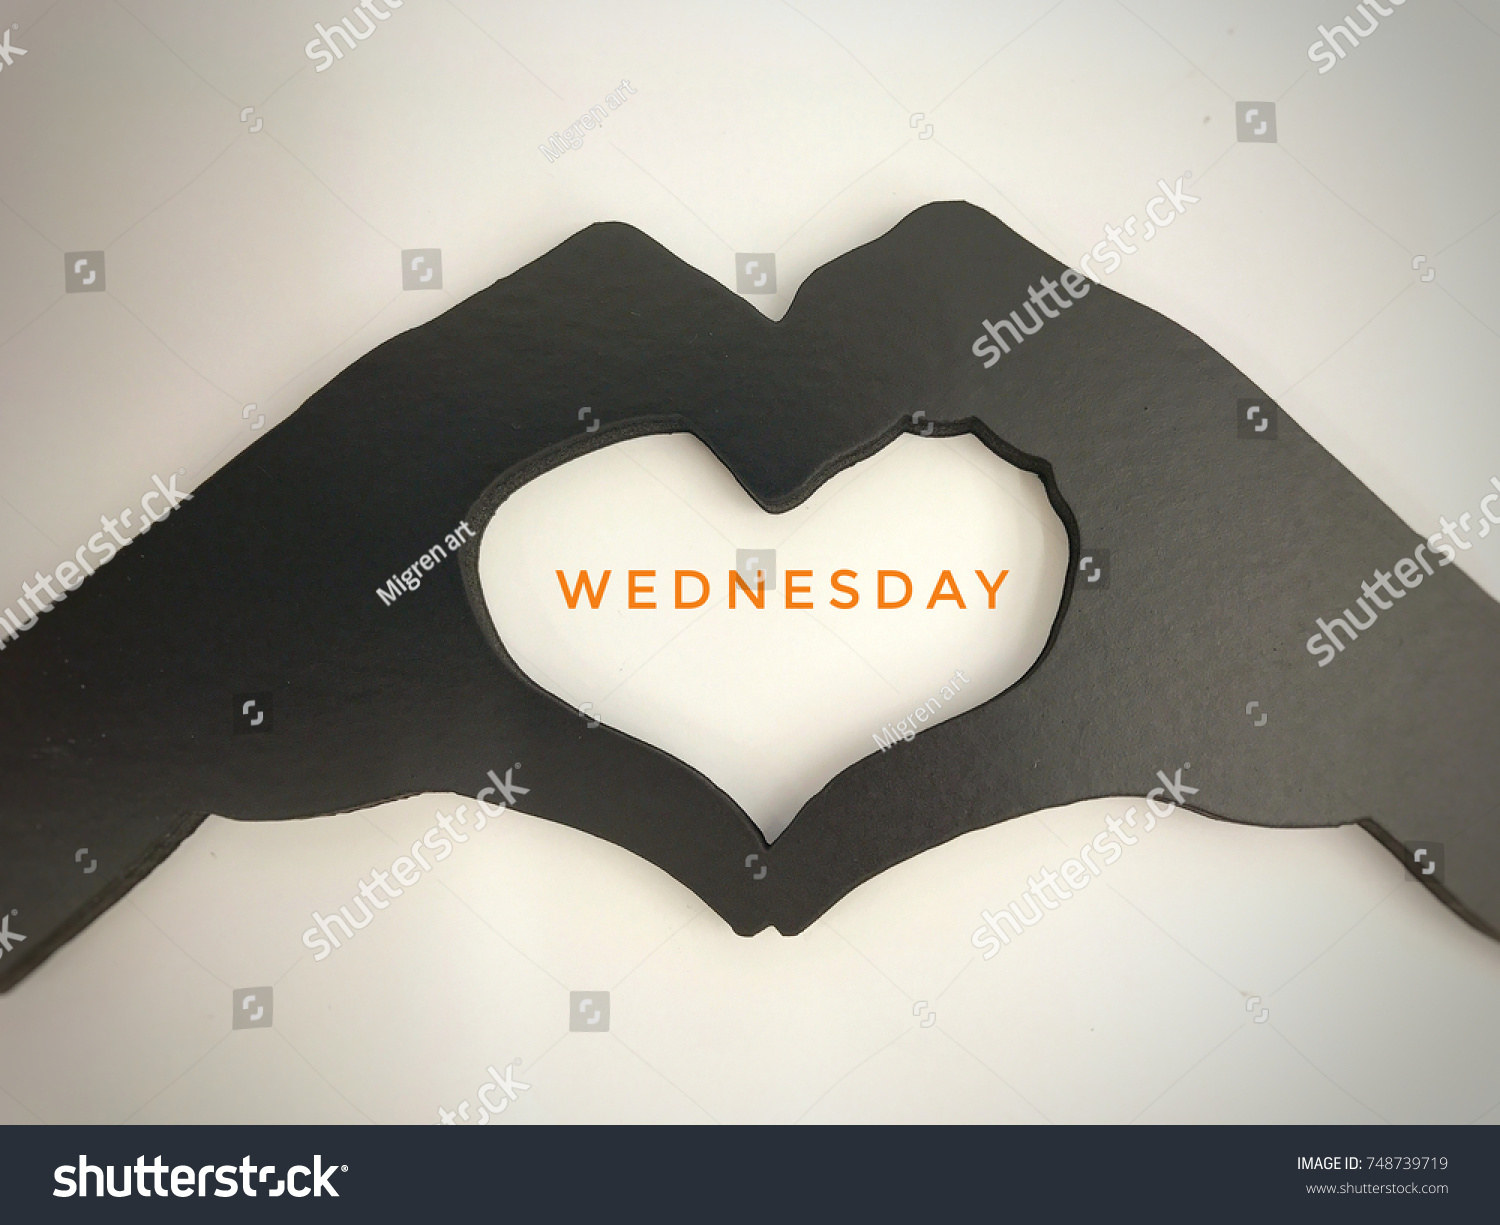 Name Weekday Written Middle Heart Symbol Stock Photo Edit Now